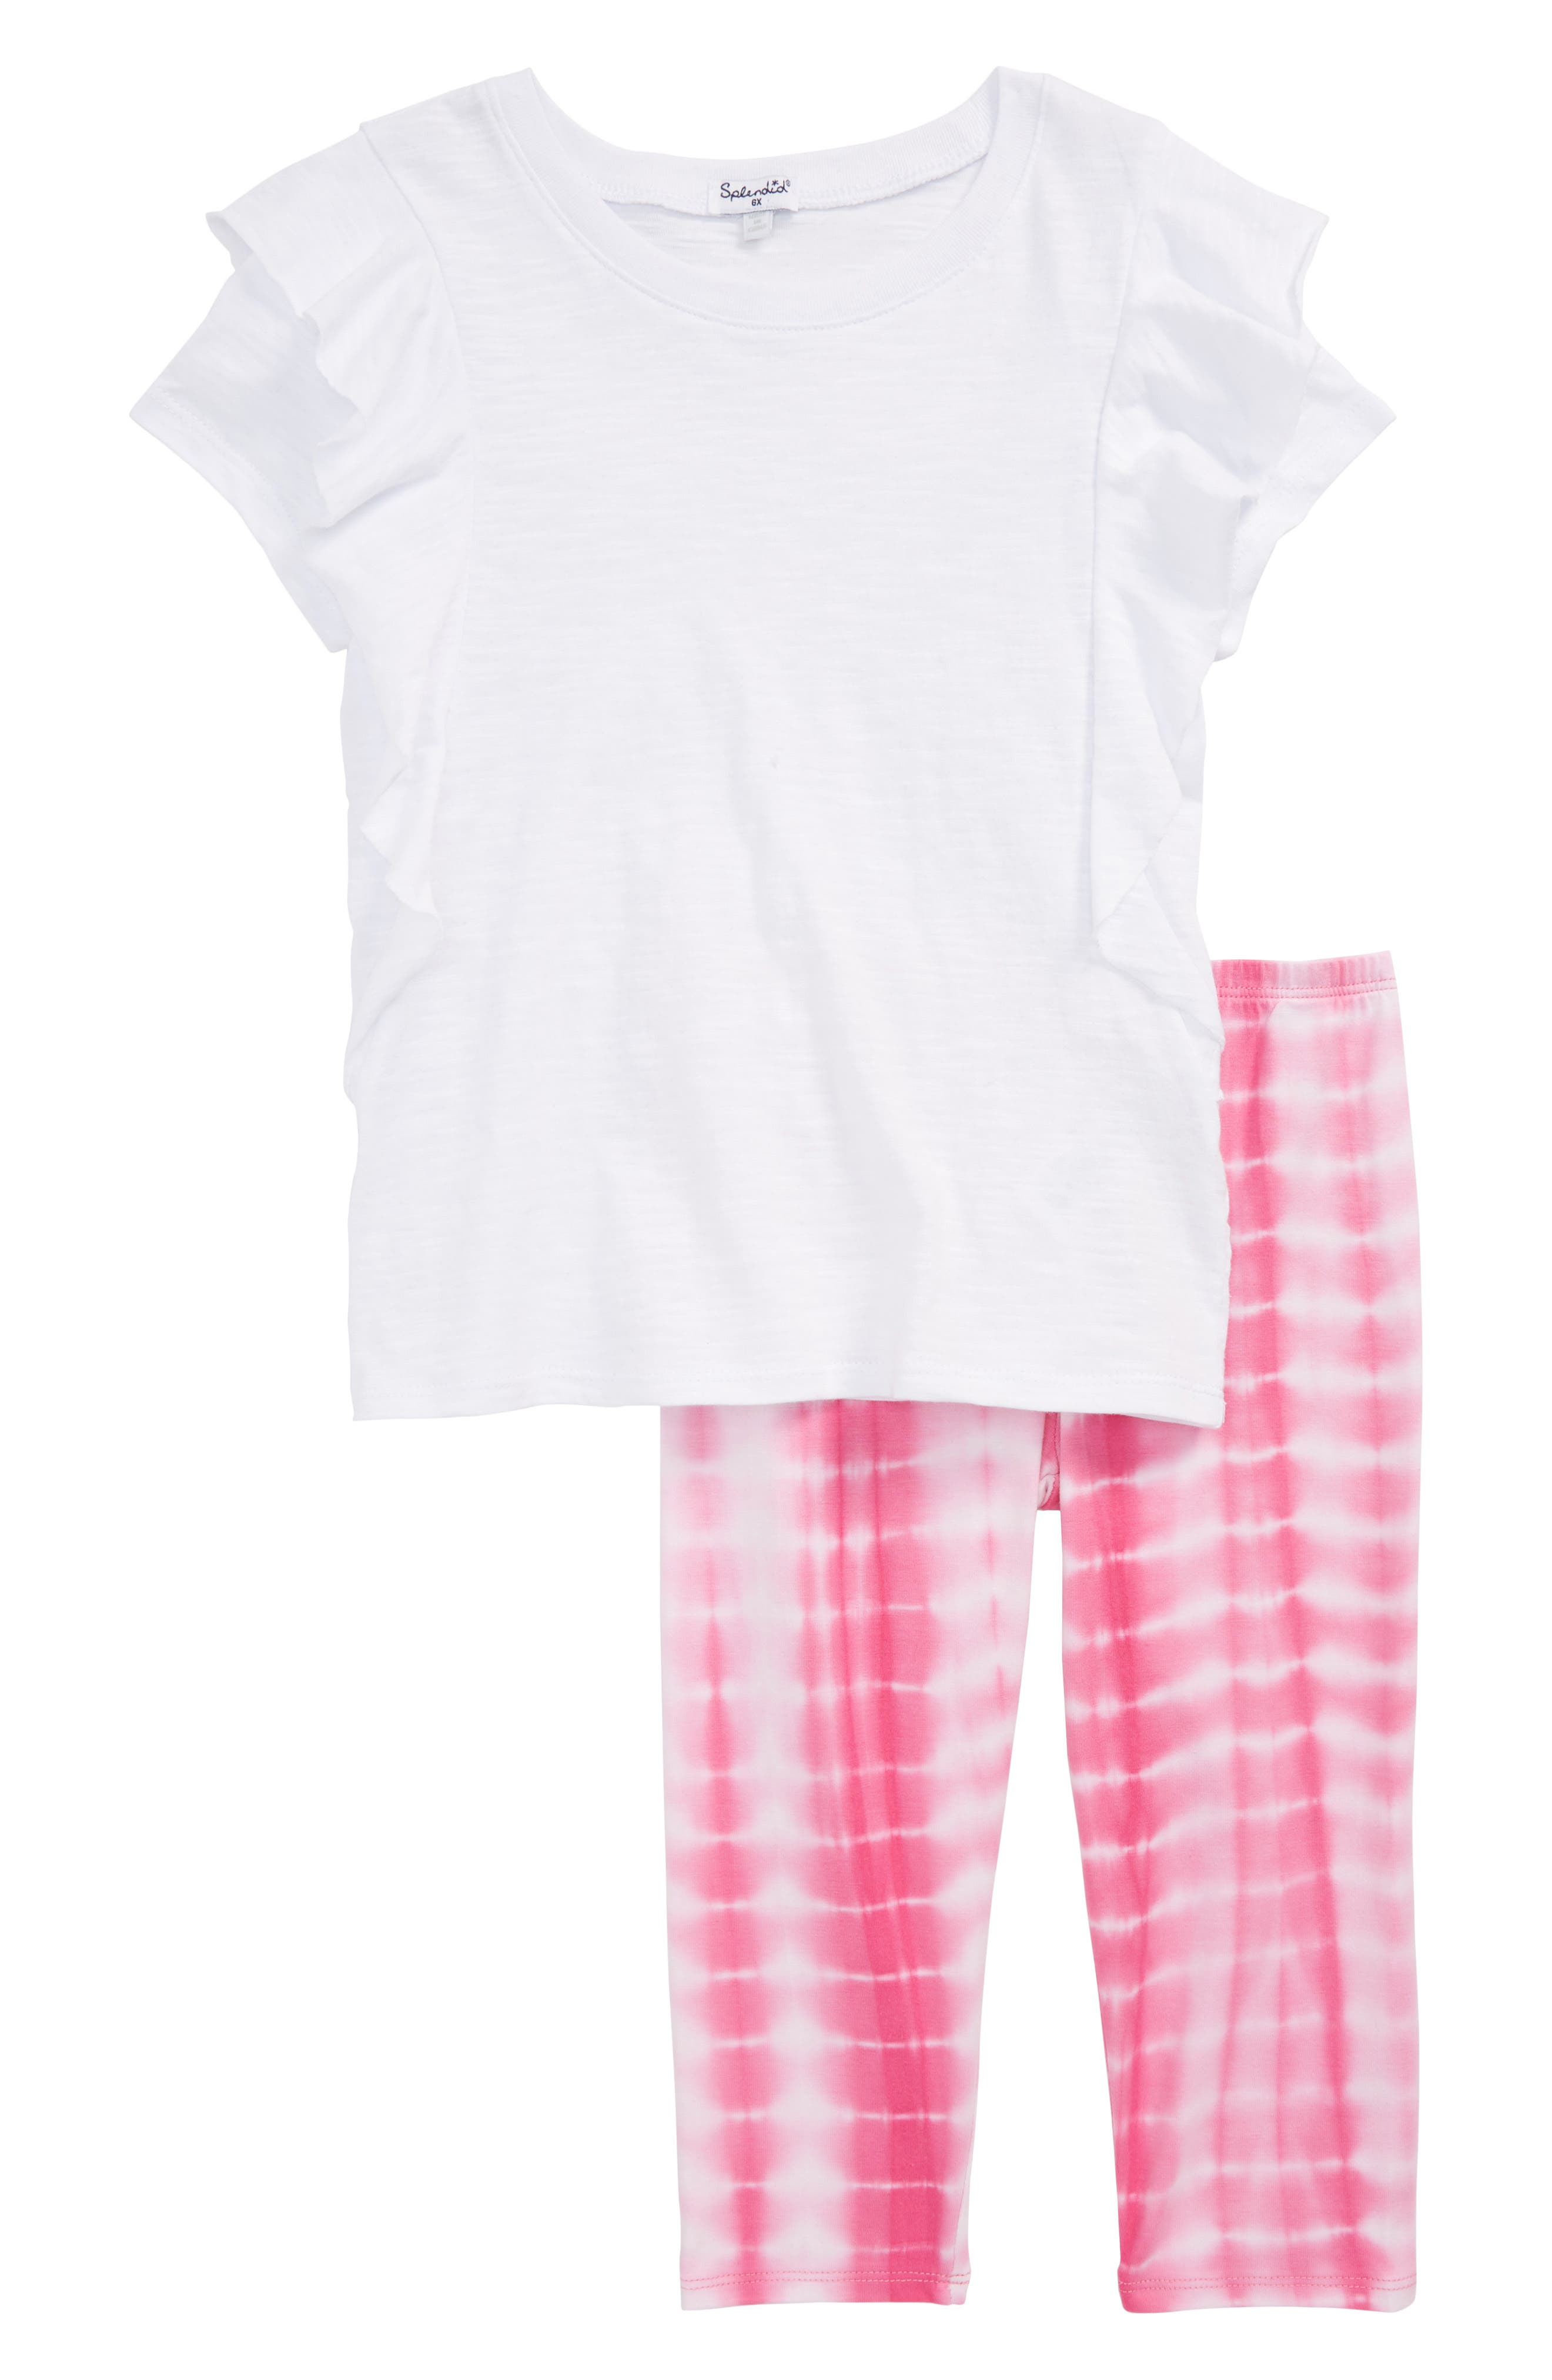 Alternate Image 1 Selected - Splendid Slub Tee & Tie Dye Leggings Set (Toddler Girls & Little Girls)